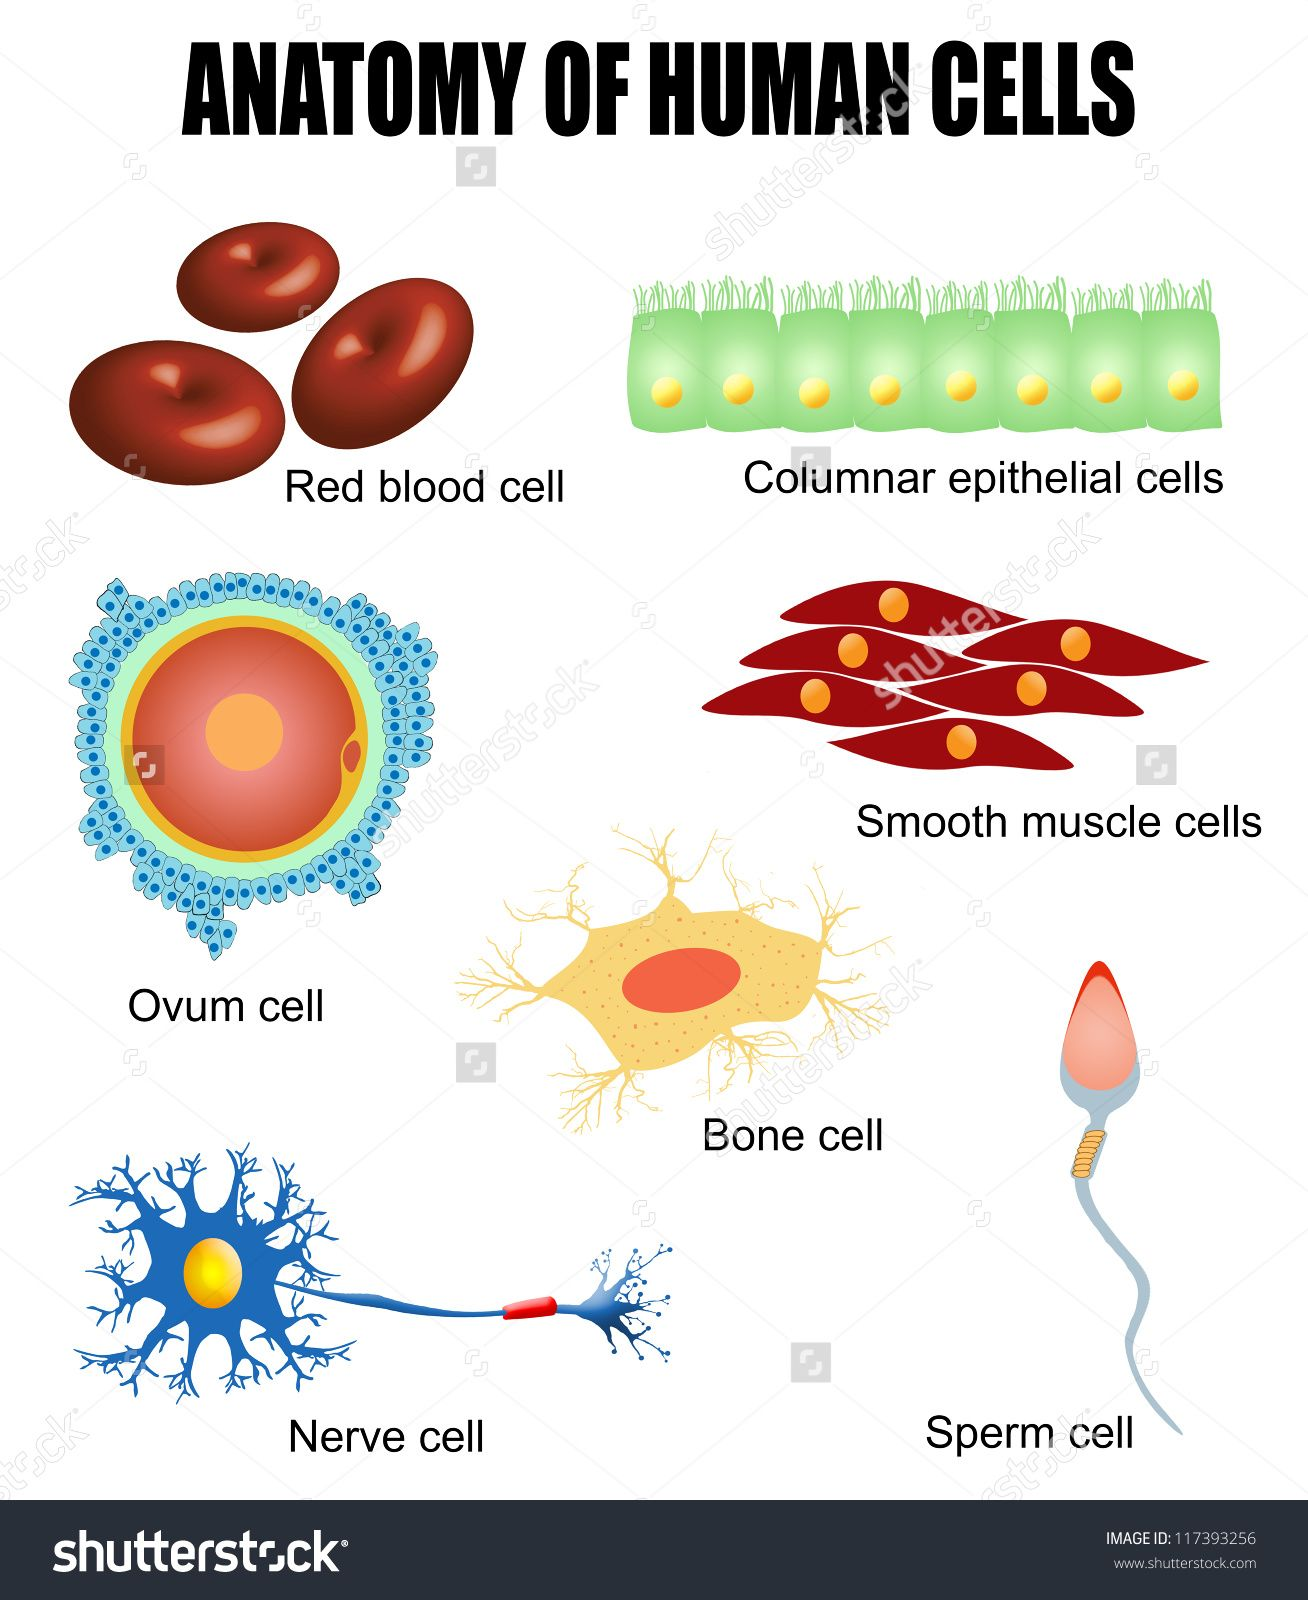 medium resolution of anatomy of human cells useful for education in schools and clinics vector illustration